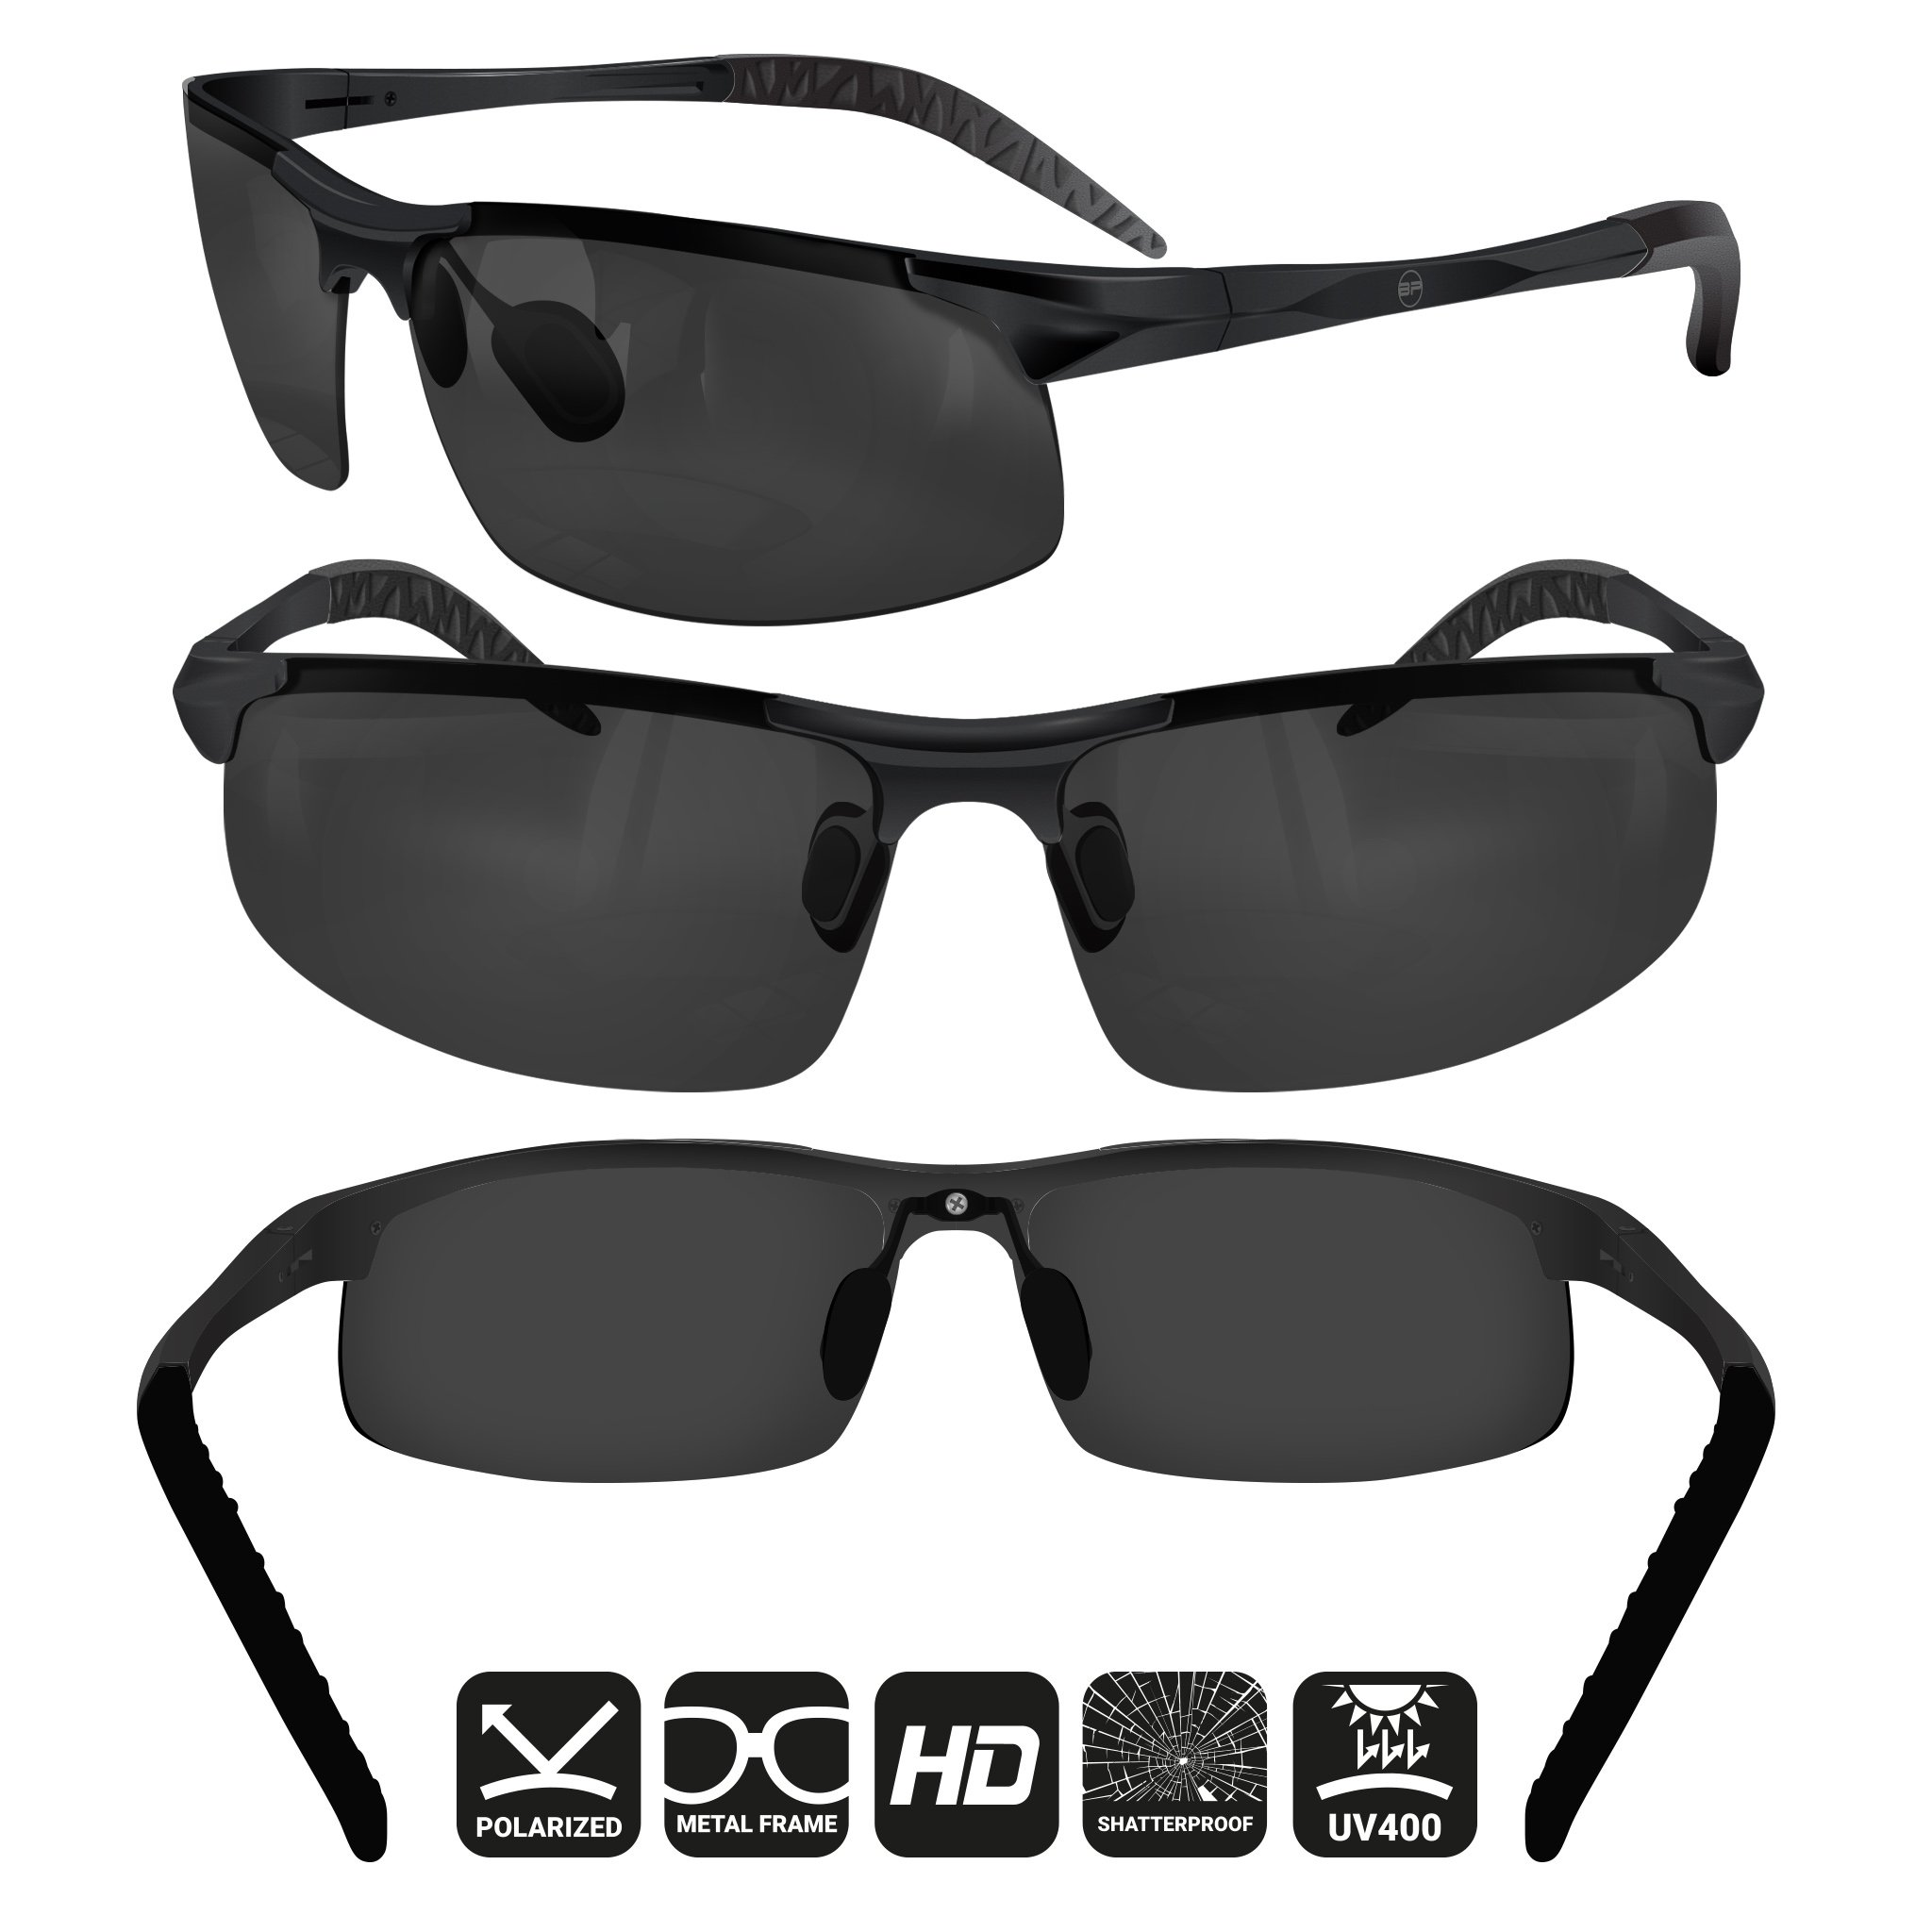 69d9640374e BLUPOND Sports Sunglasses for Men Women - Anti Fog Polarized Shooting  Safety Glasses for Ultimate Eye Protection